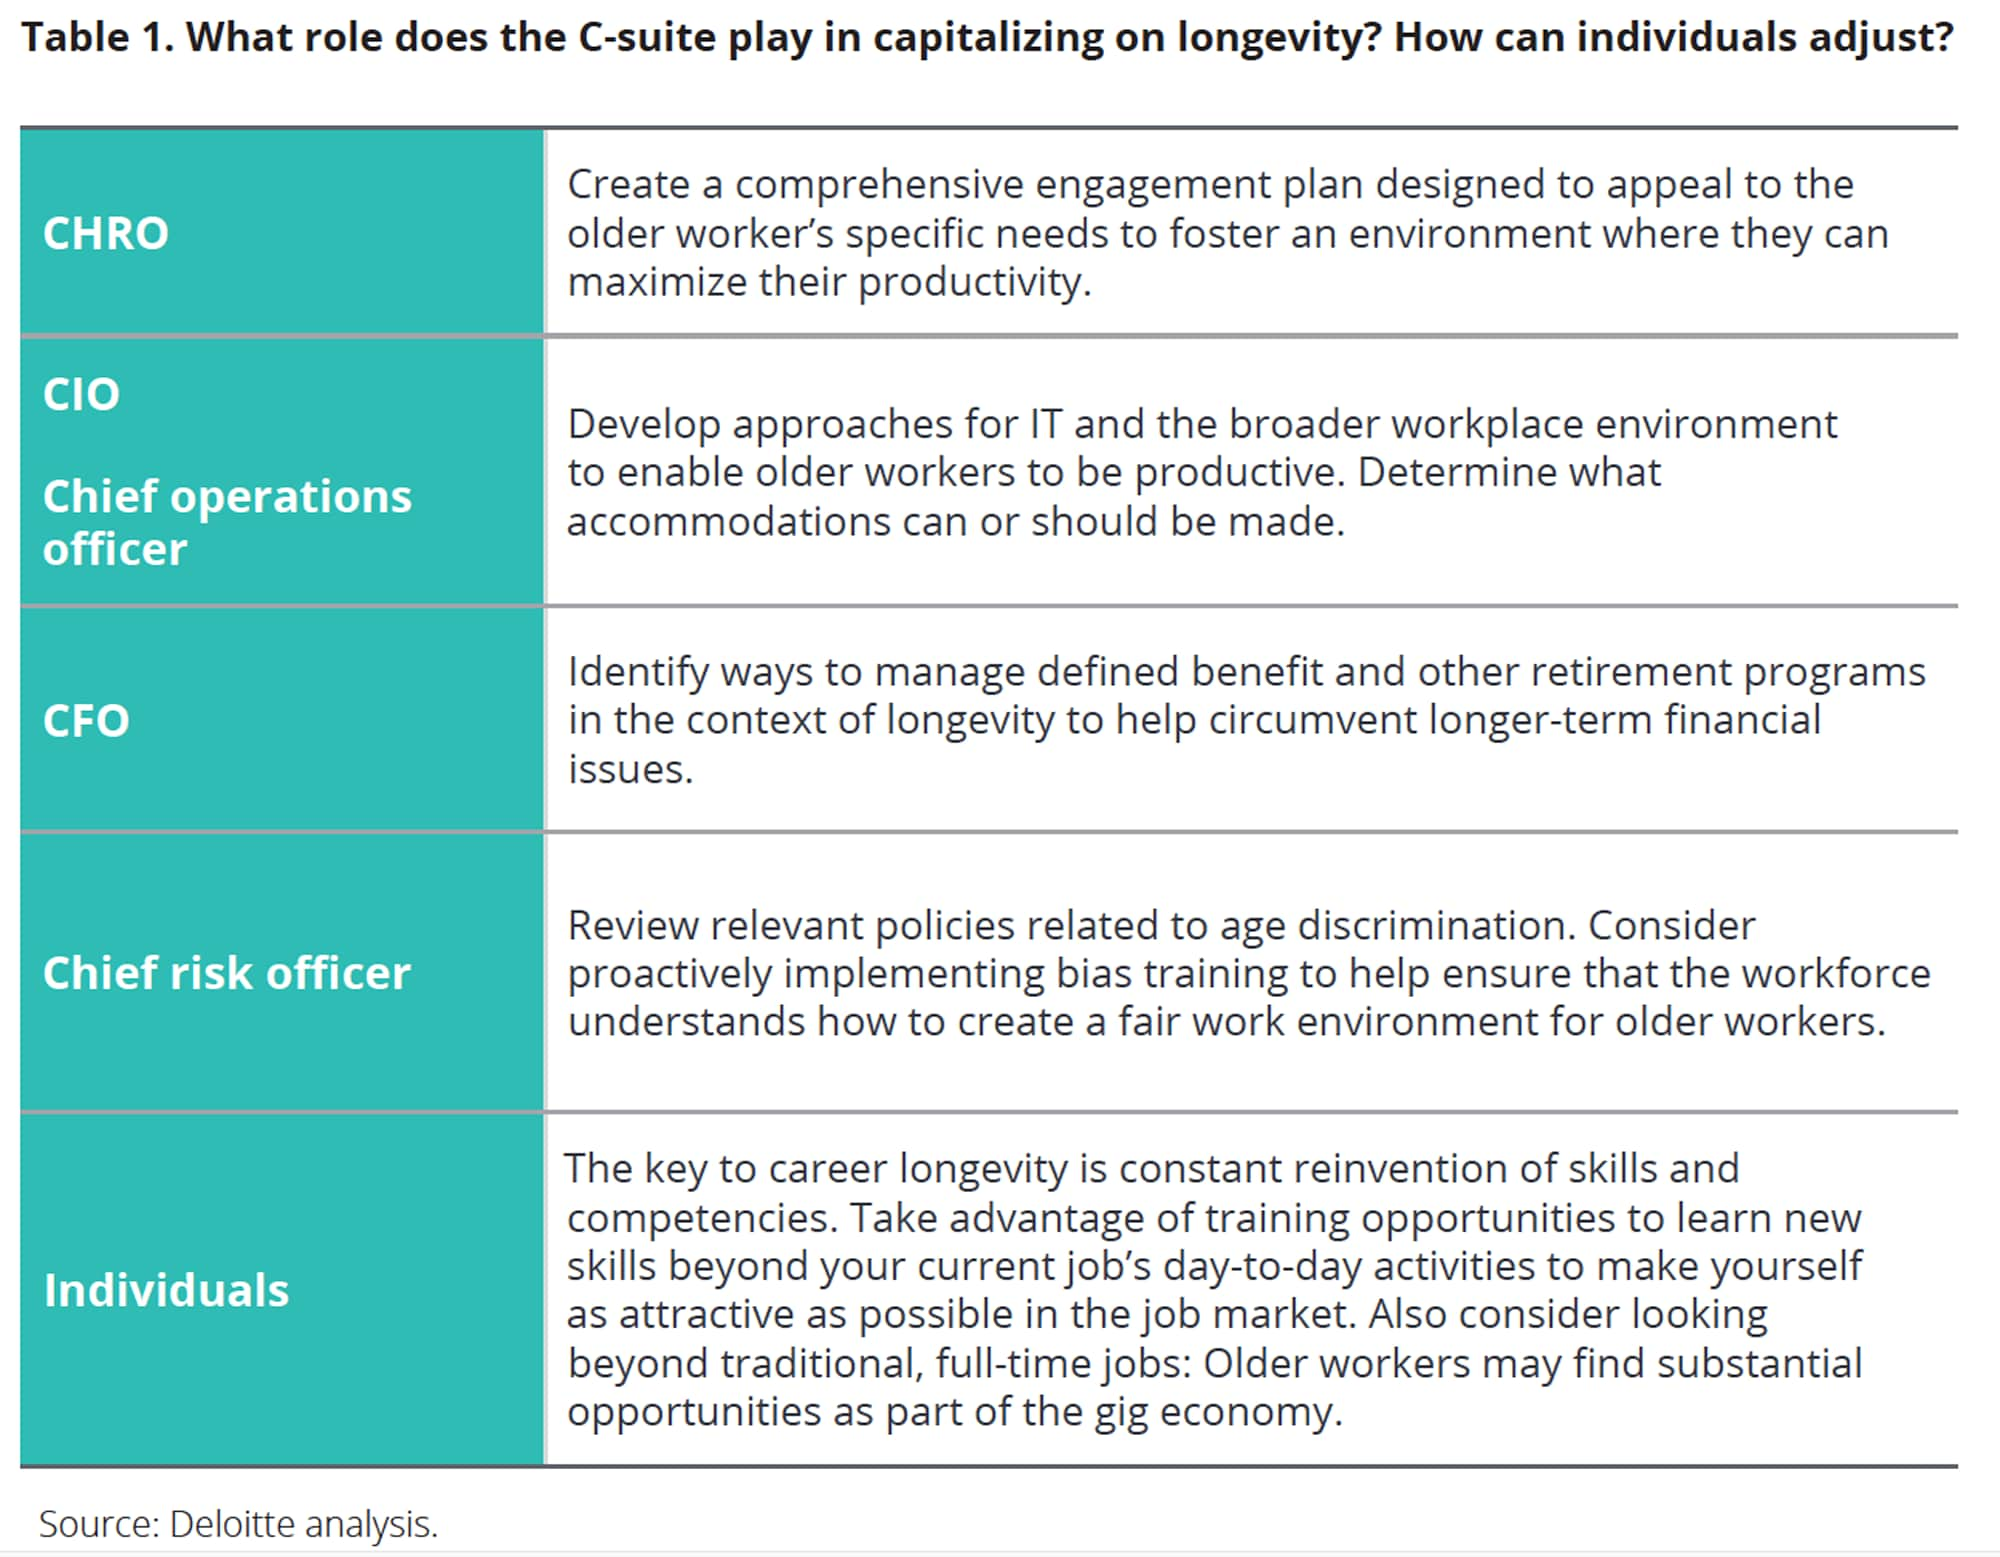 What role does the C-suite play in capitalizing on longevity? How can individuals adjust?